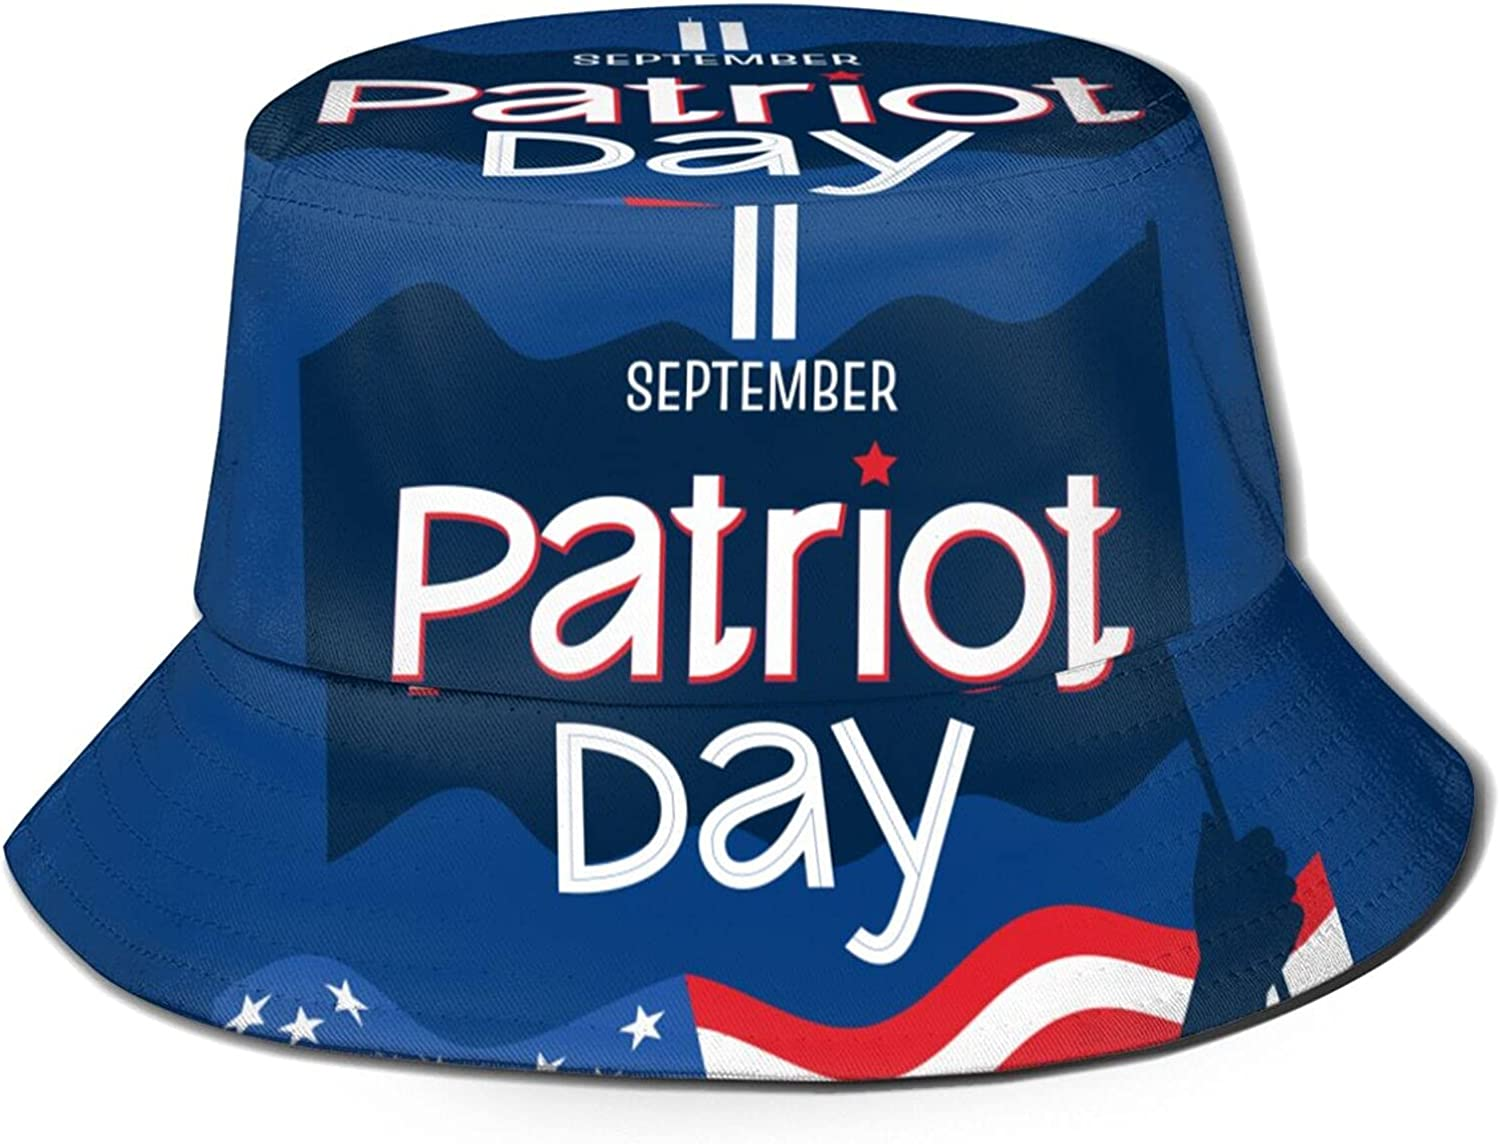 9 11 Memorial Never Forget Patriot Day Sum Beautiful Bucket Hats Popularity 70% OFF Outlet